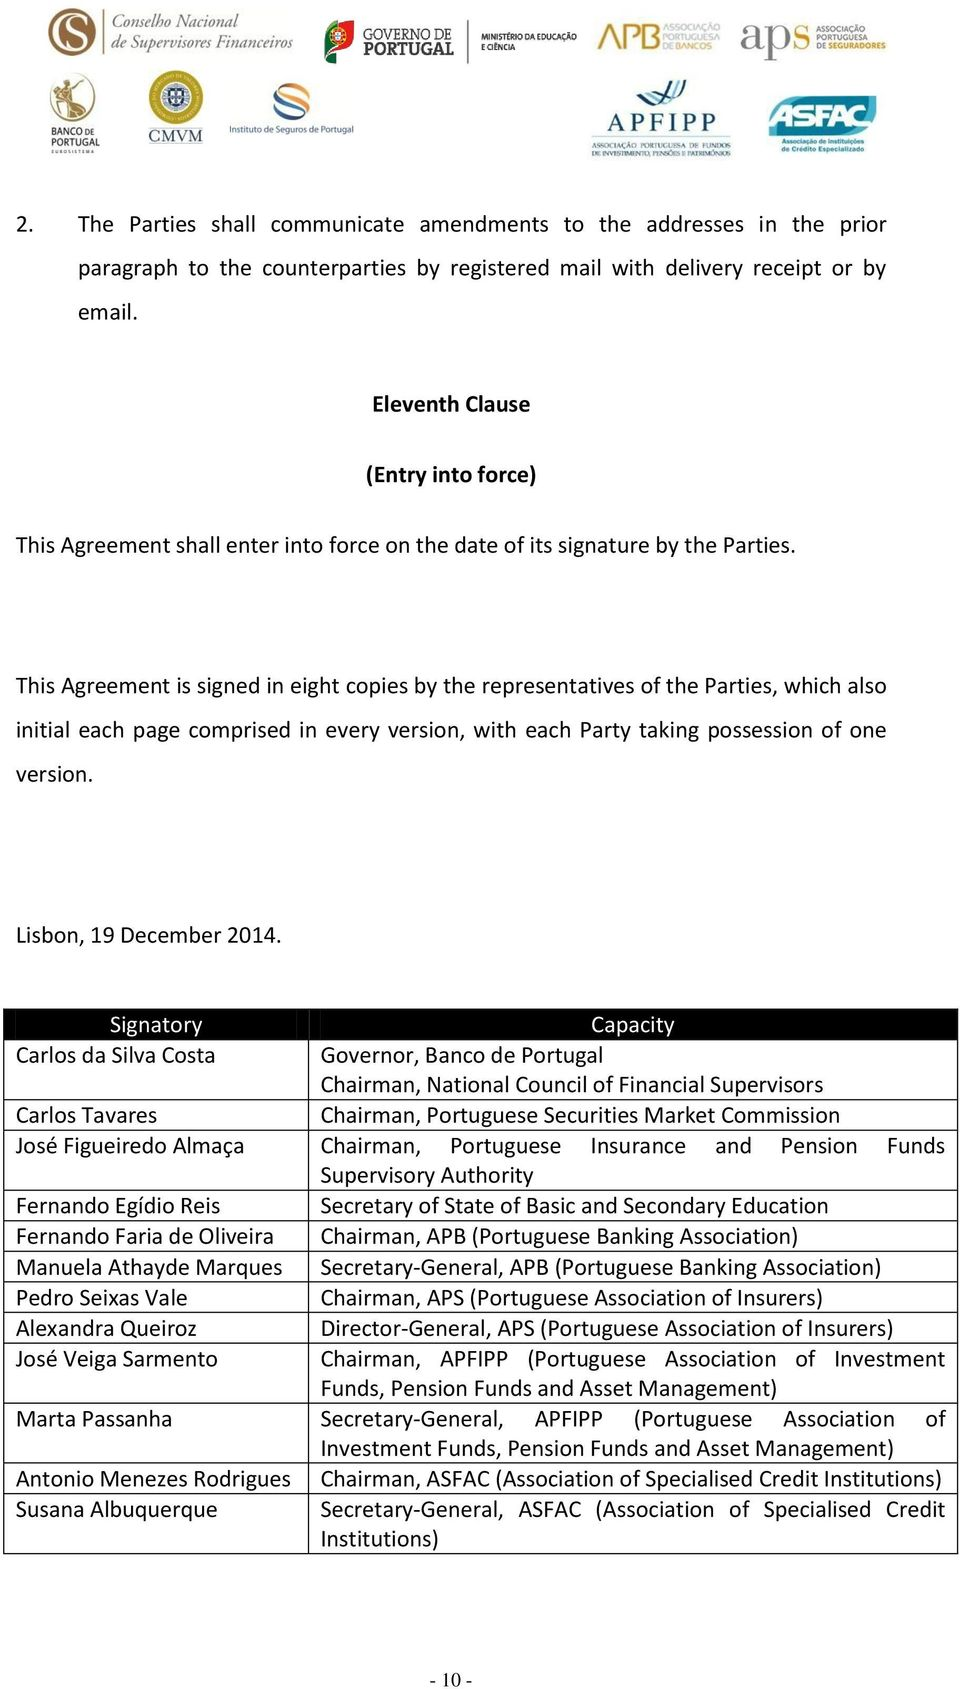 This Agreement is signed in eight copies by the representatives of the Parties, which also initial each page comprised in every version, with each Party taking possession of one version.